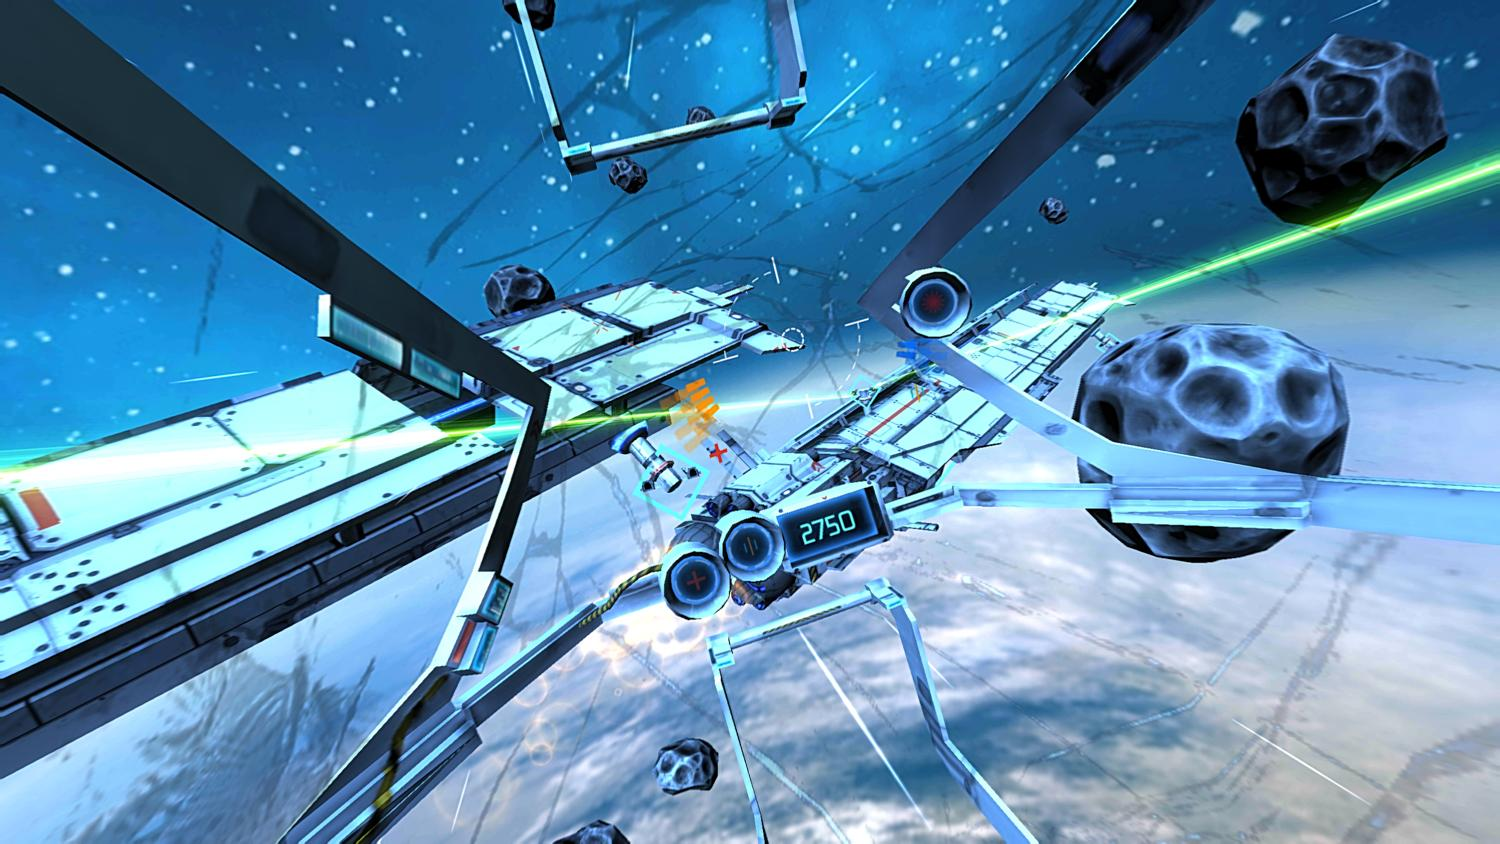 End Space VR for Cardboard Screenshot 0